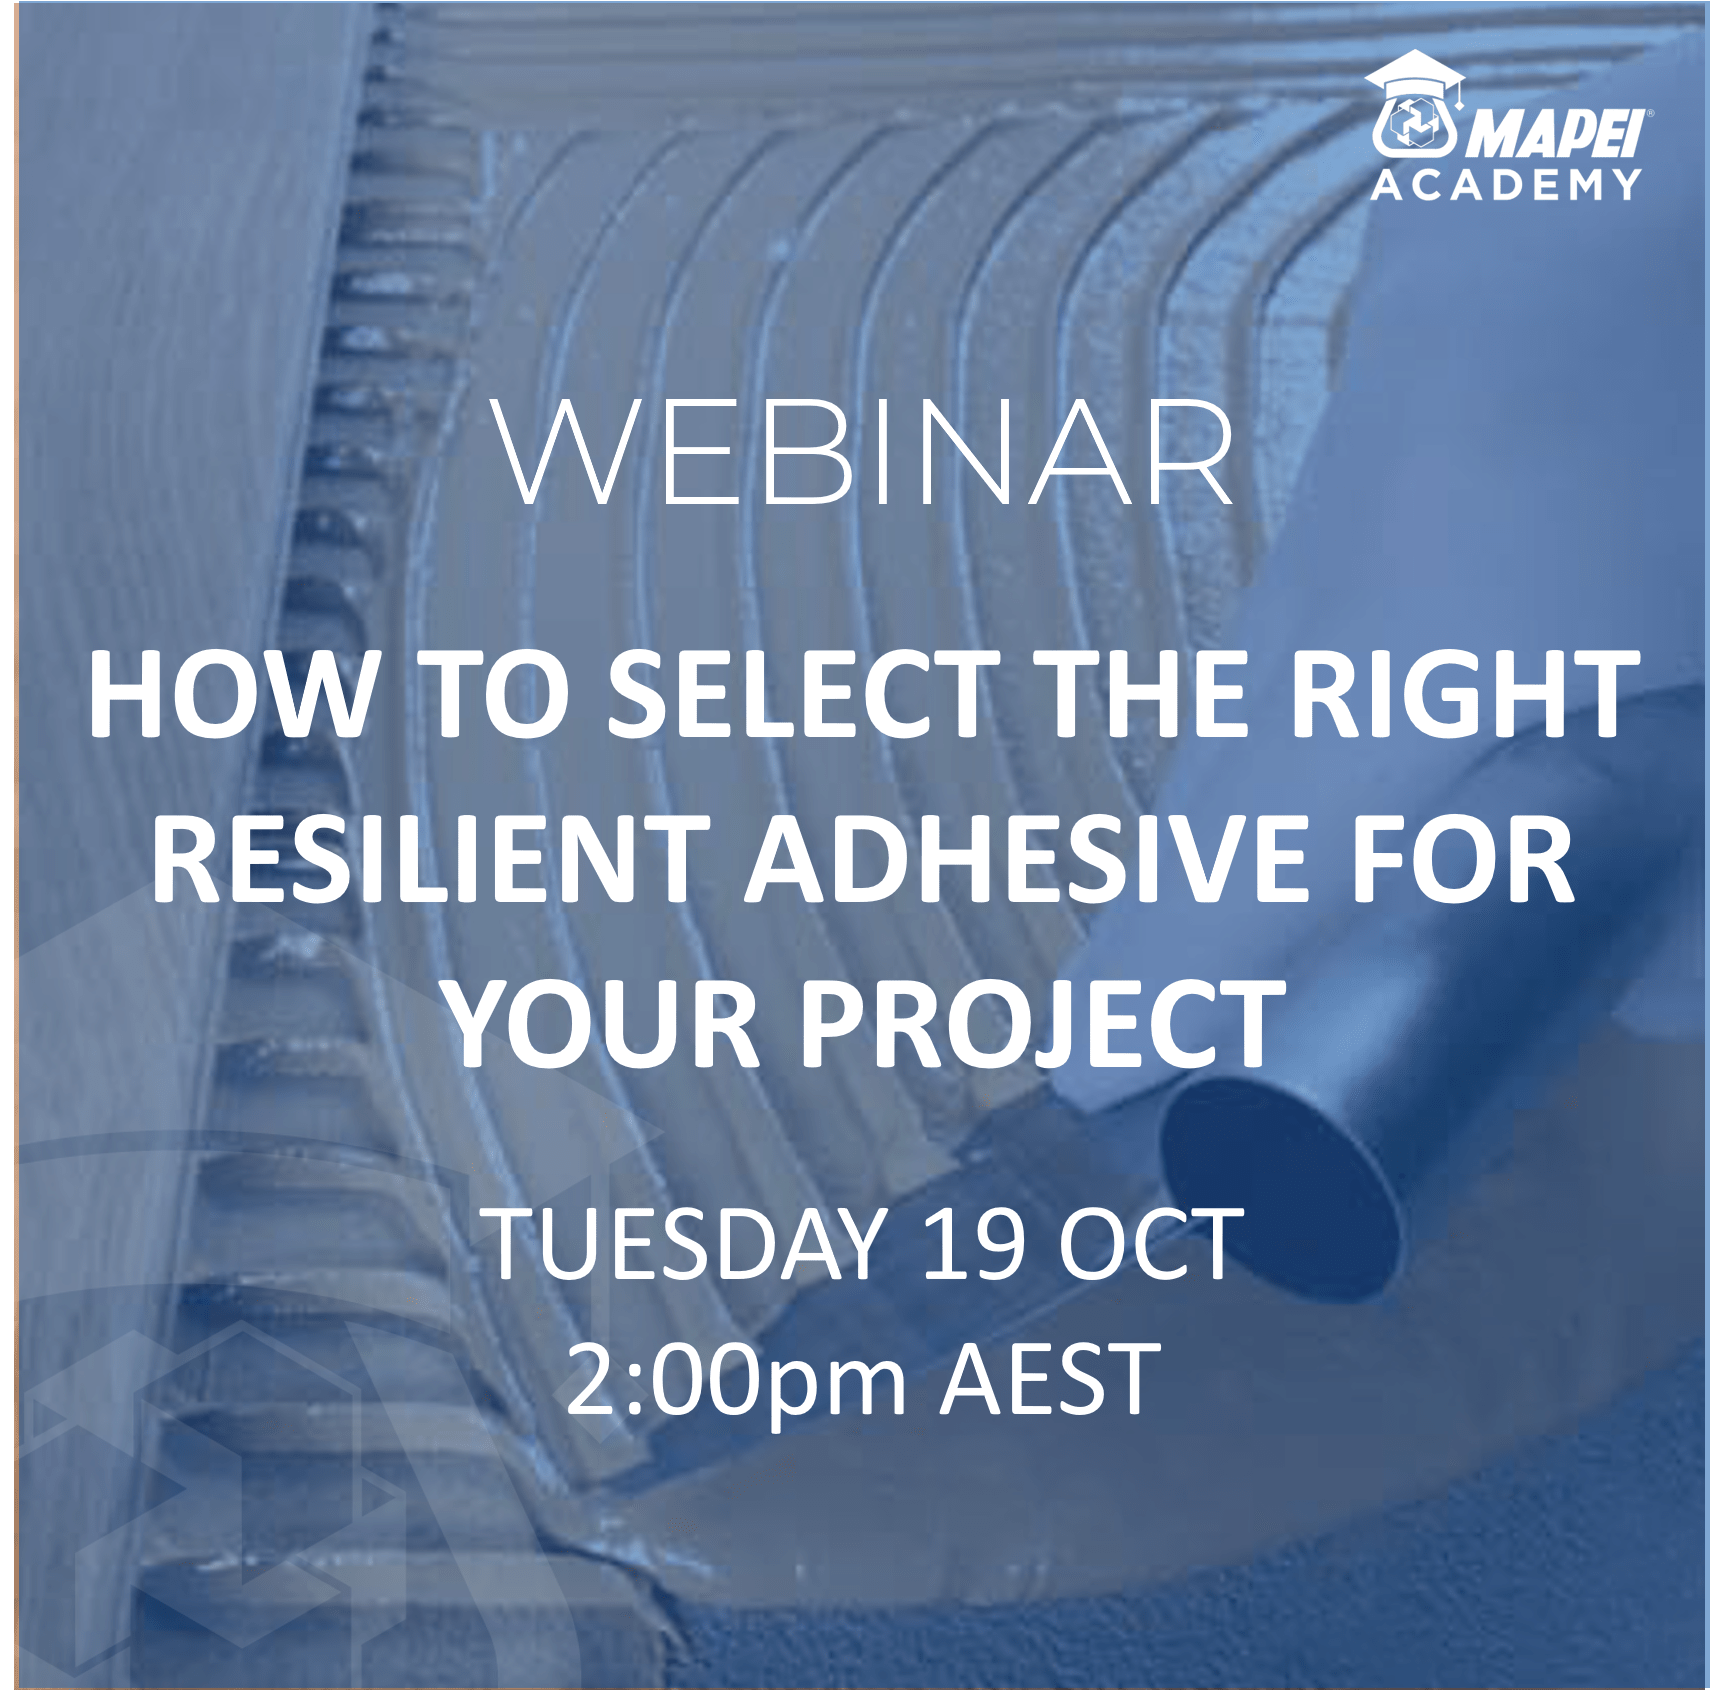 Magnews - How to select the right resilient adhesive for your project-min